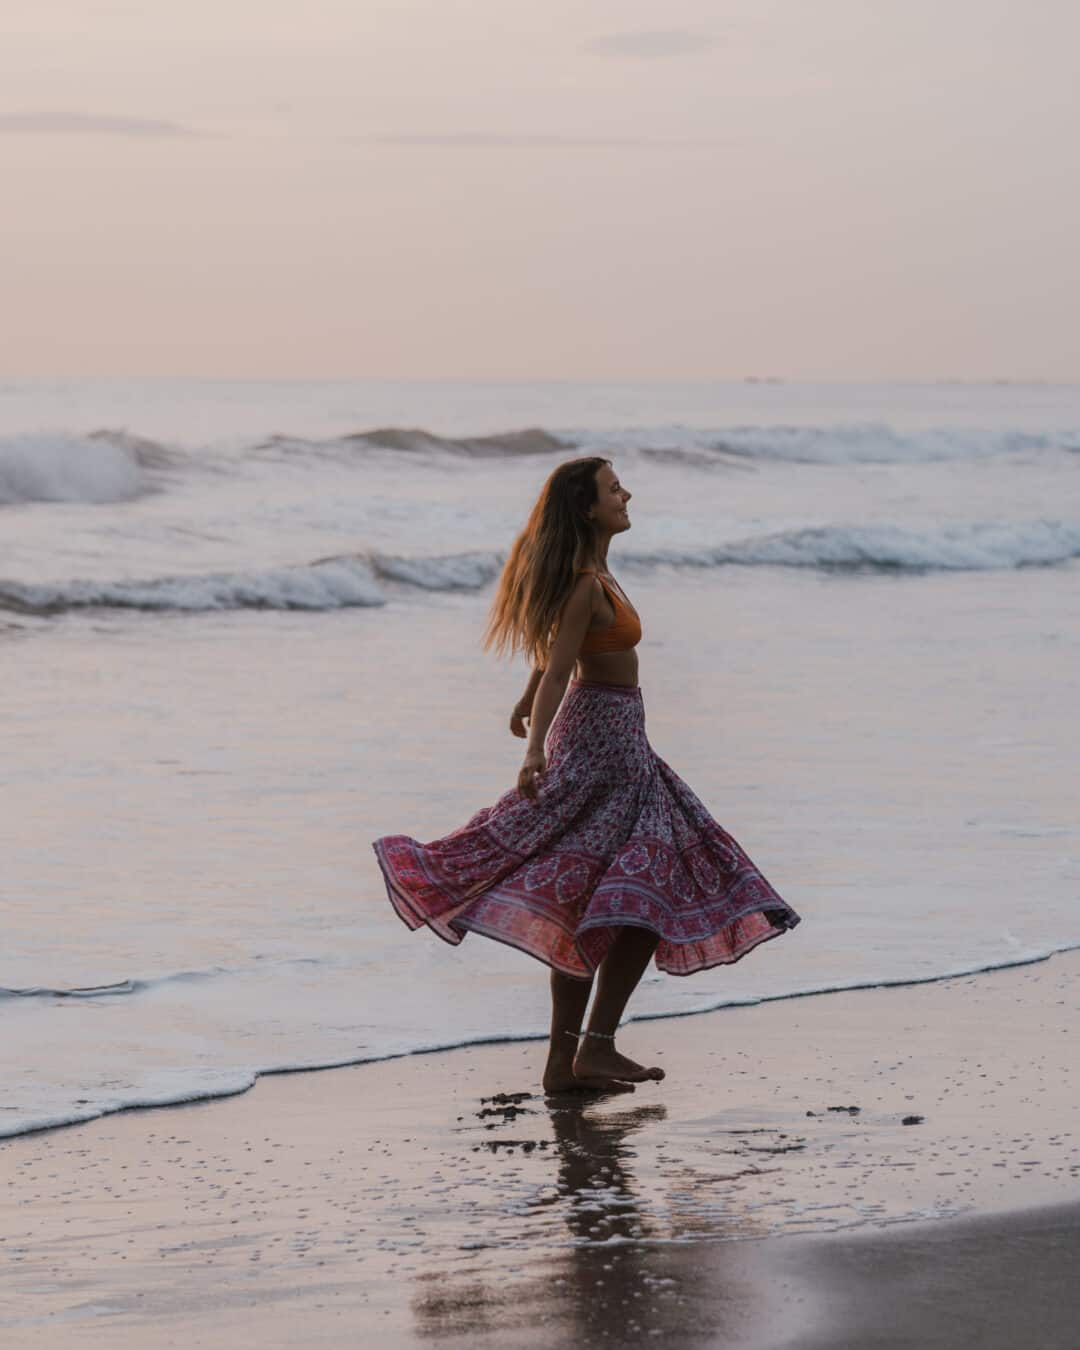 Woman dancing at the beach with sustainable clothing